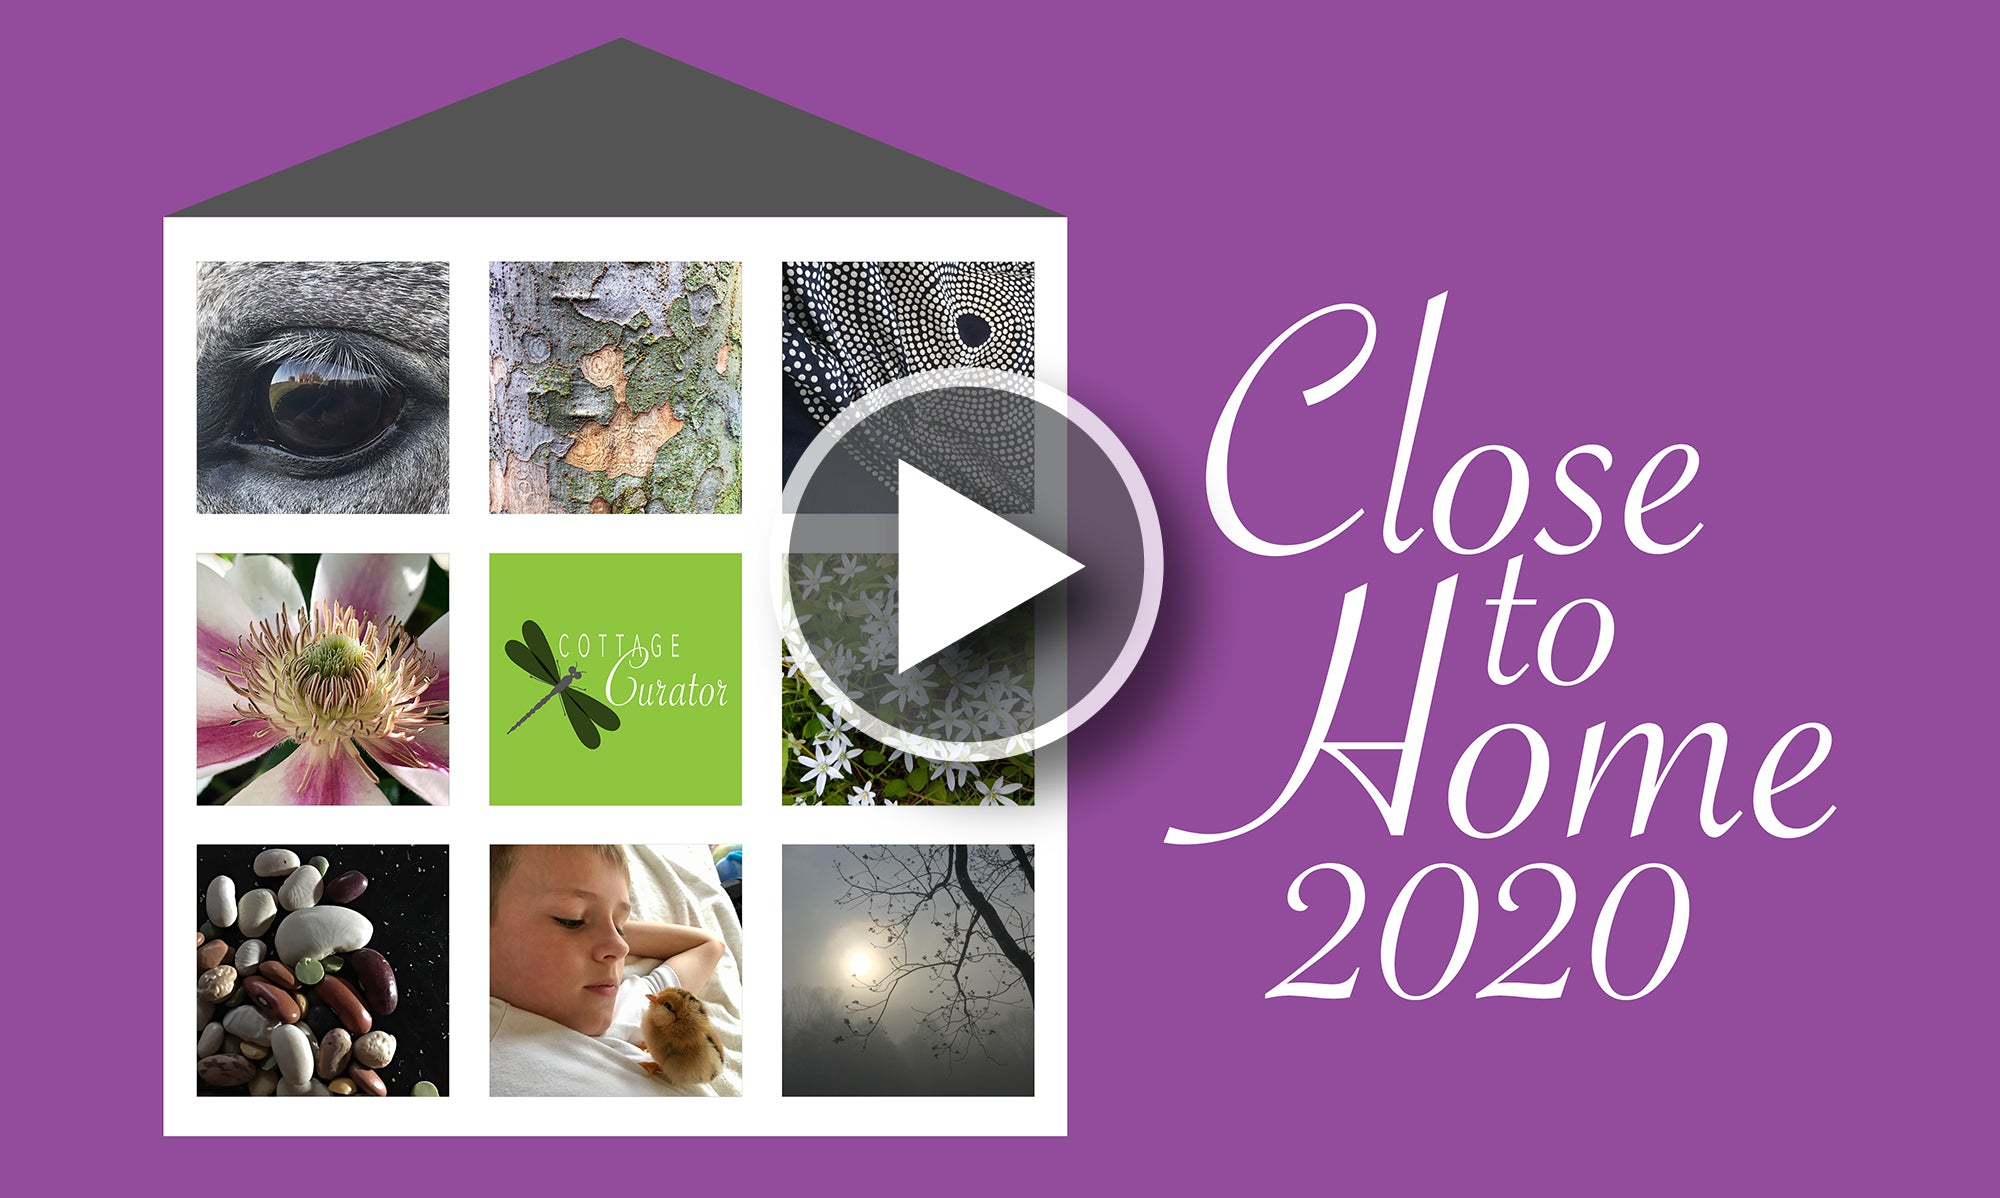 Close To Home 2020 - Online Photo Exhibition